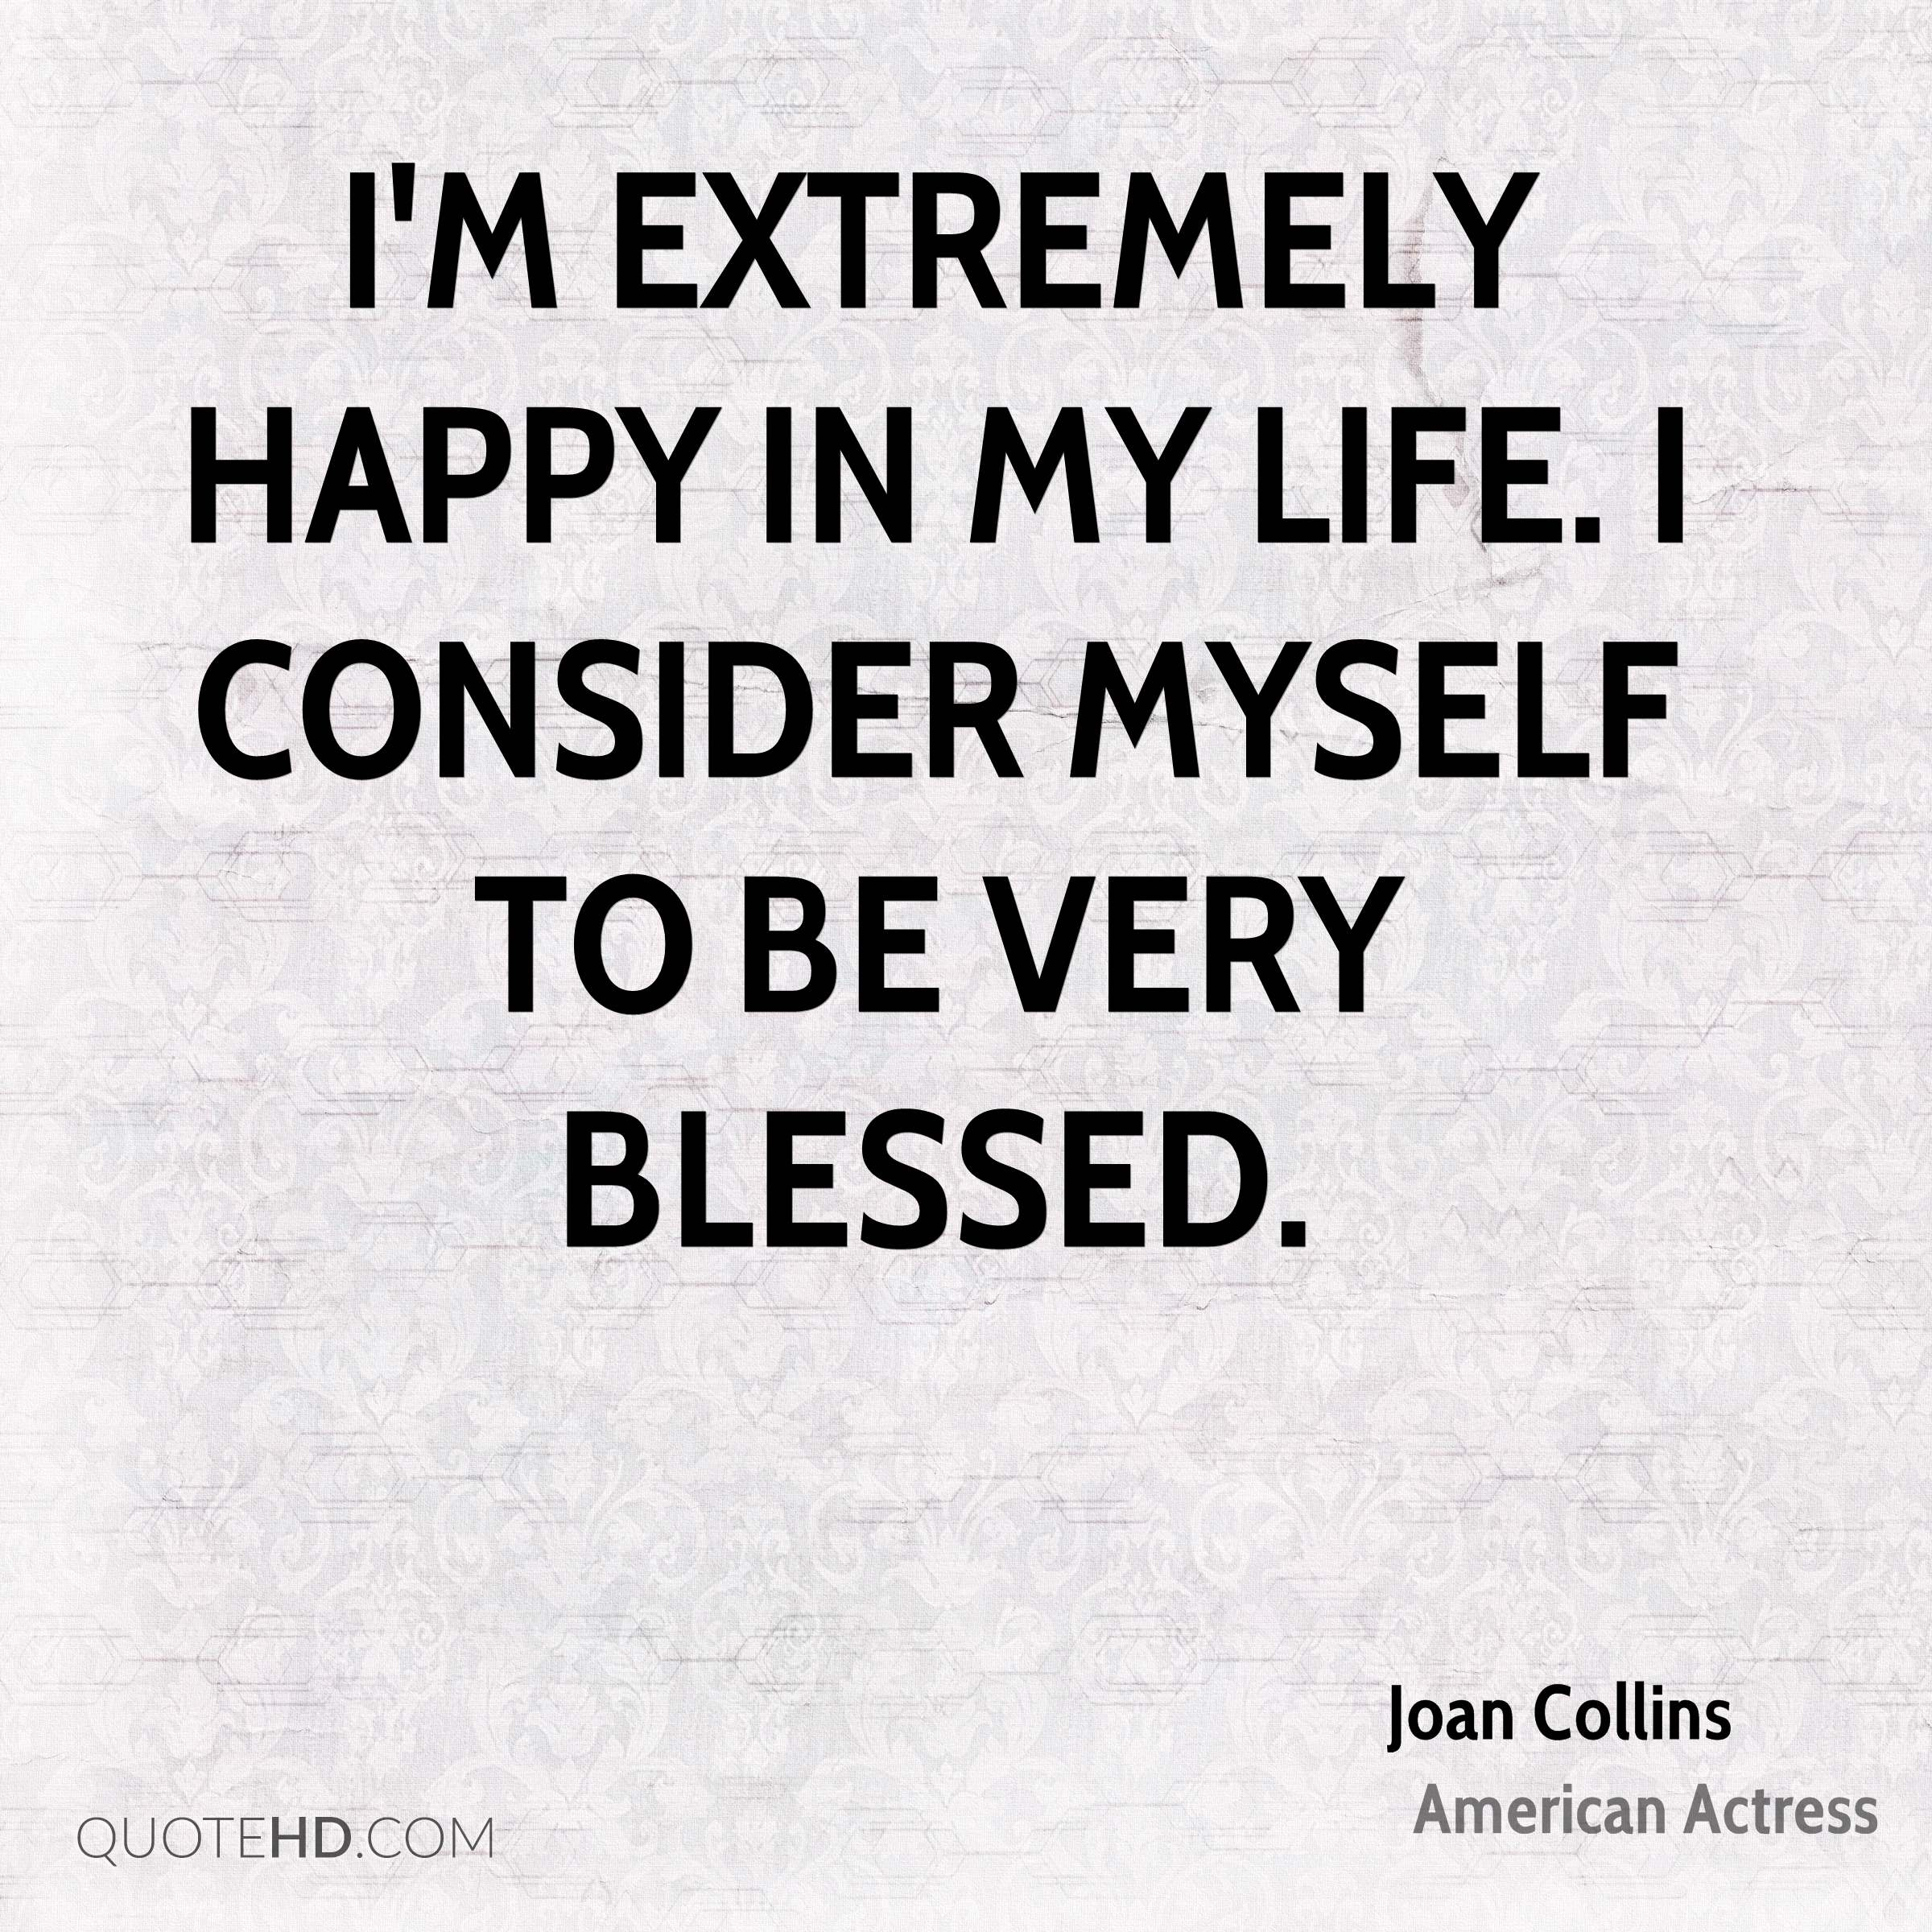 My Life Quotes Joan Collins Quotes  Quotehd